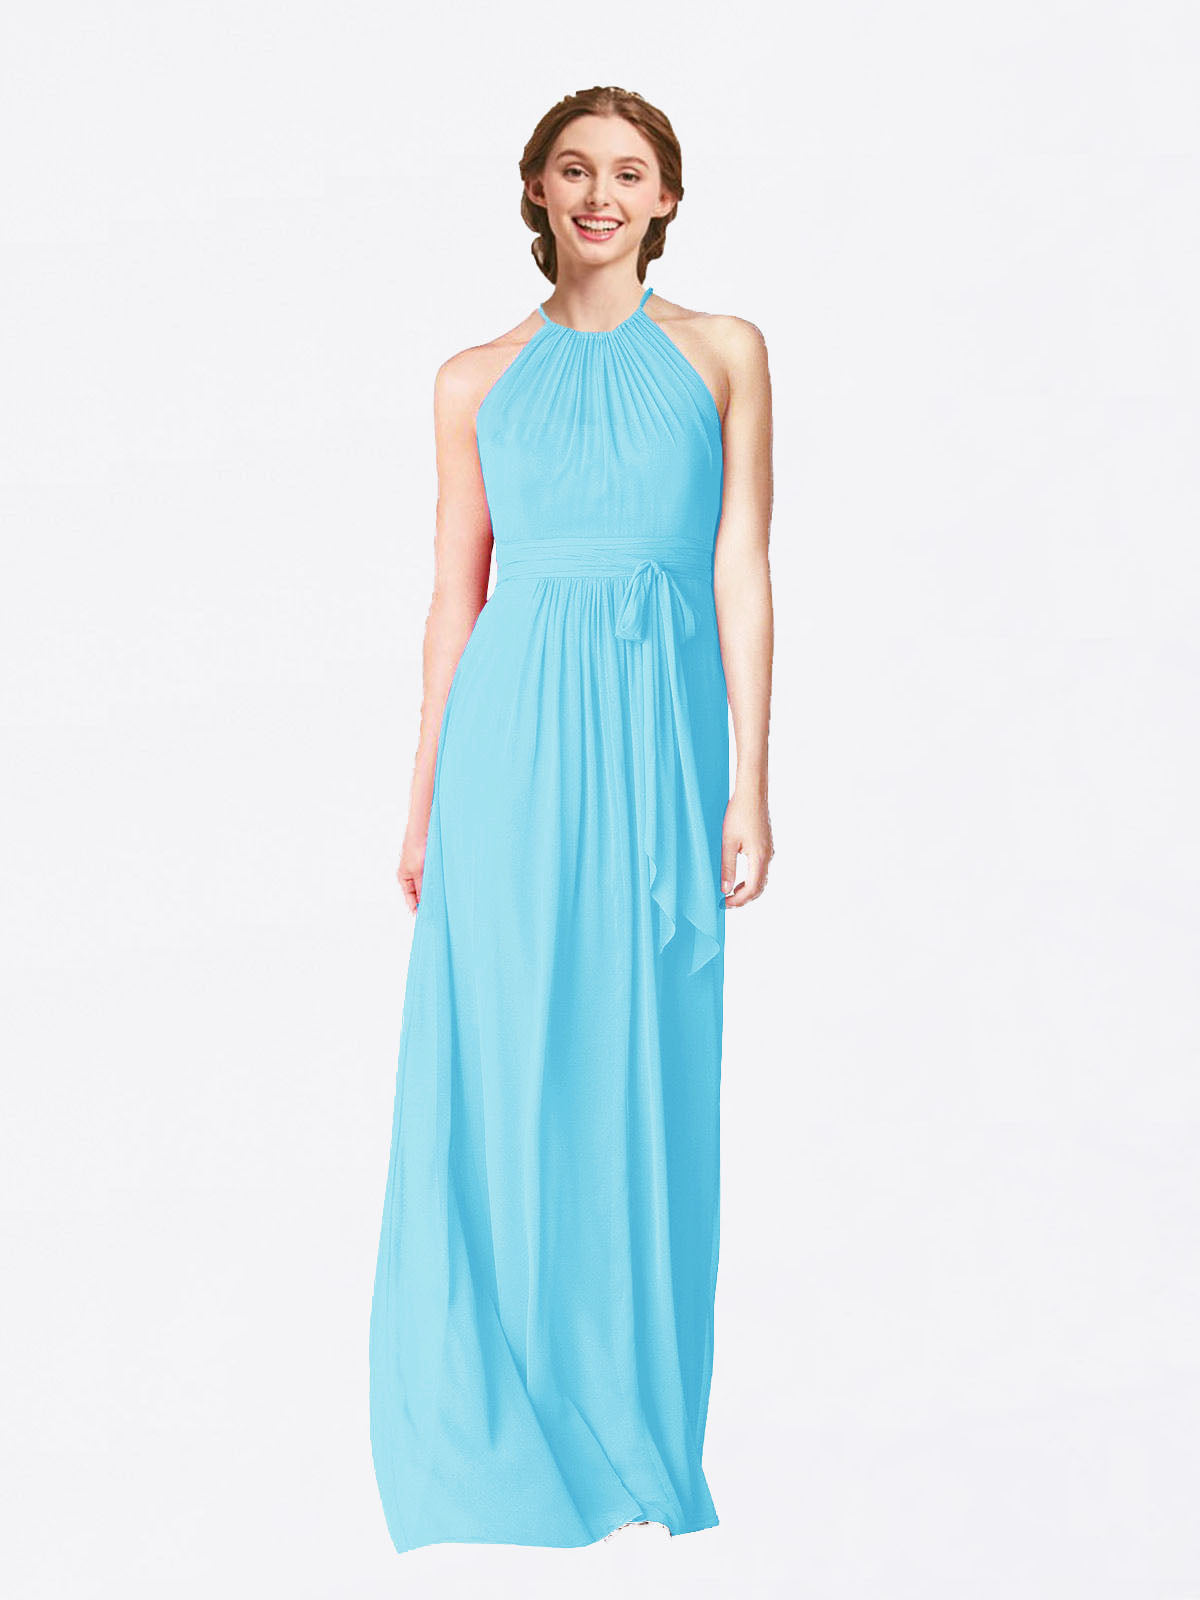 Long A-Line Halter Sleeveless Sky Blue Chiffon Bridesmaid Dress Laura